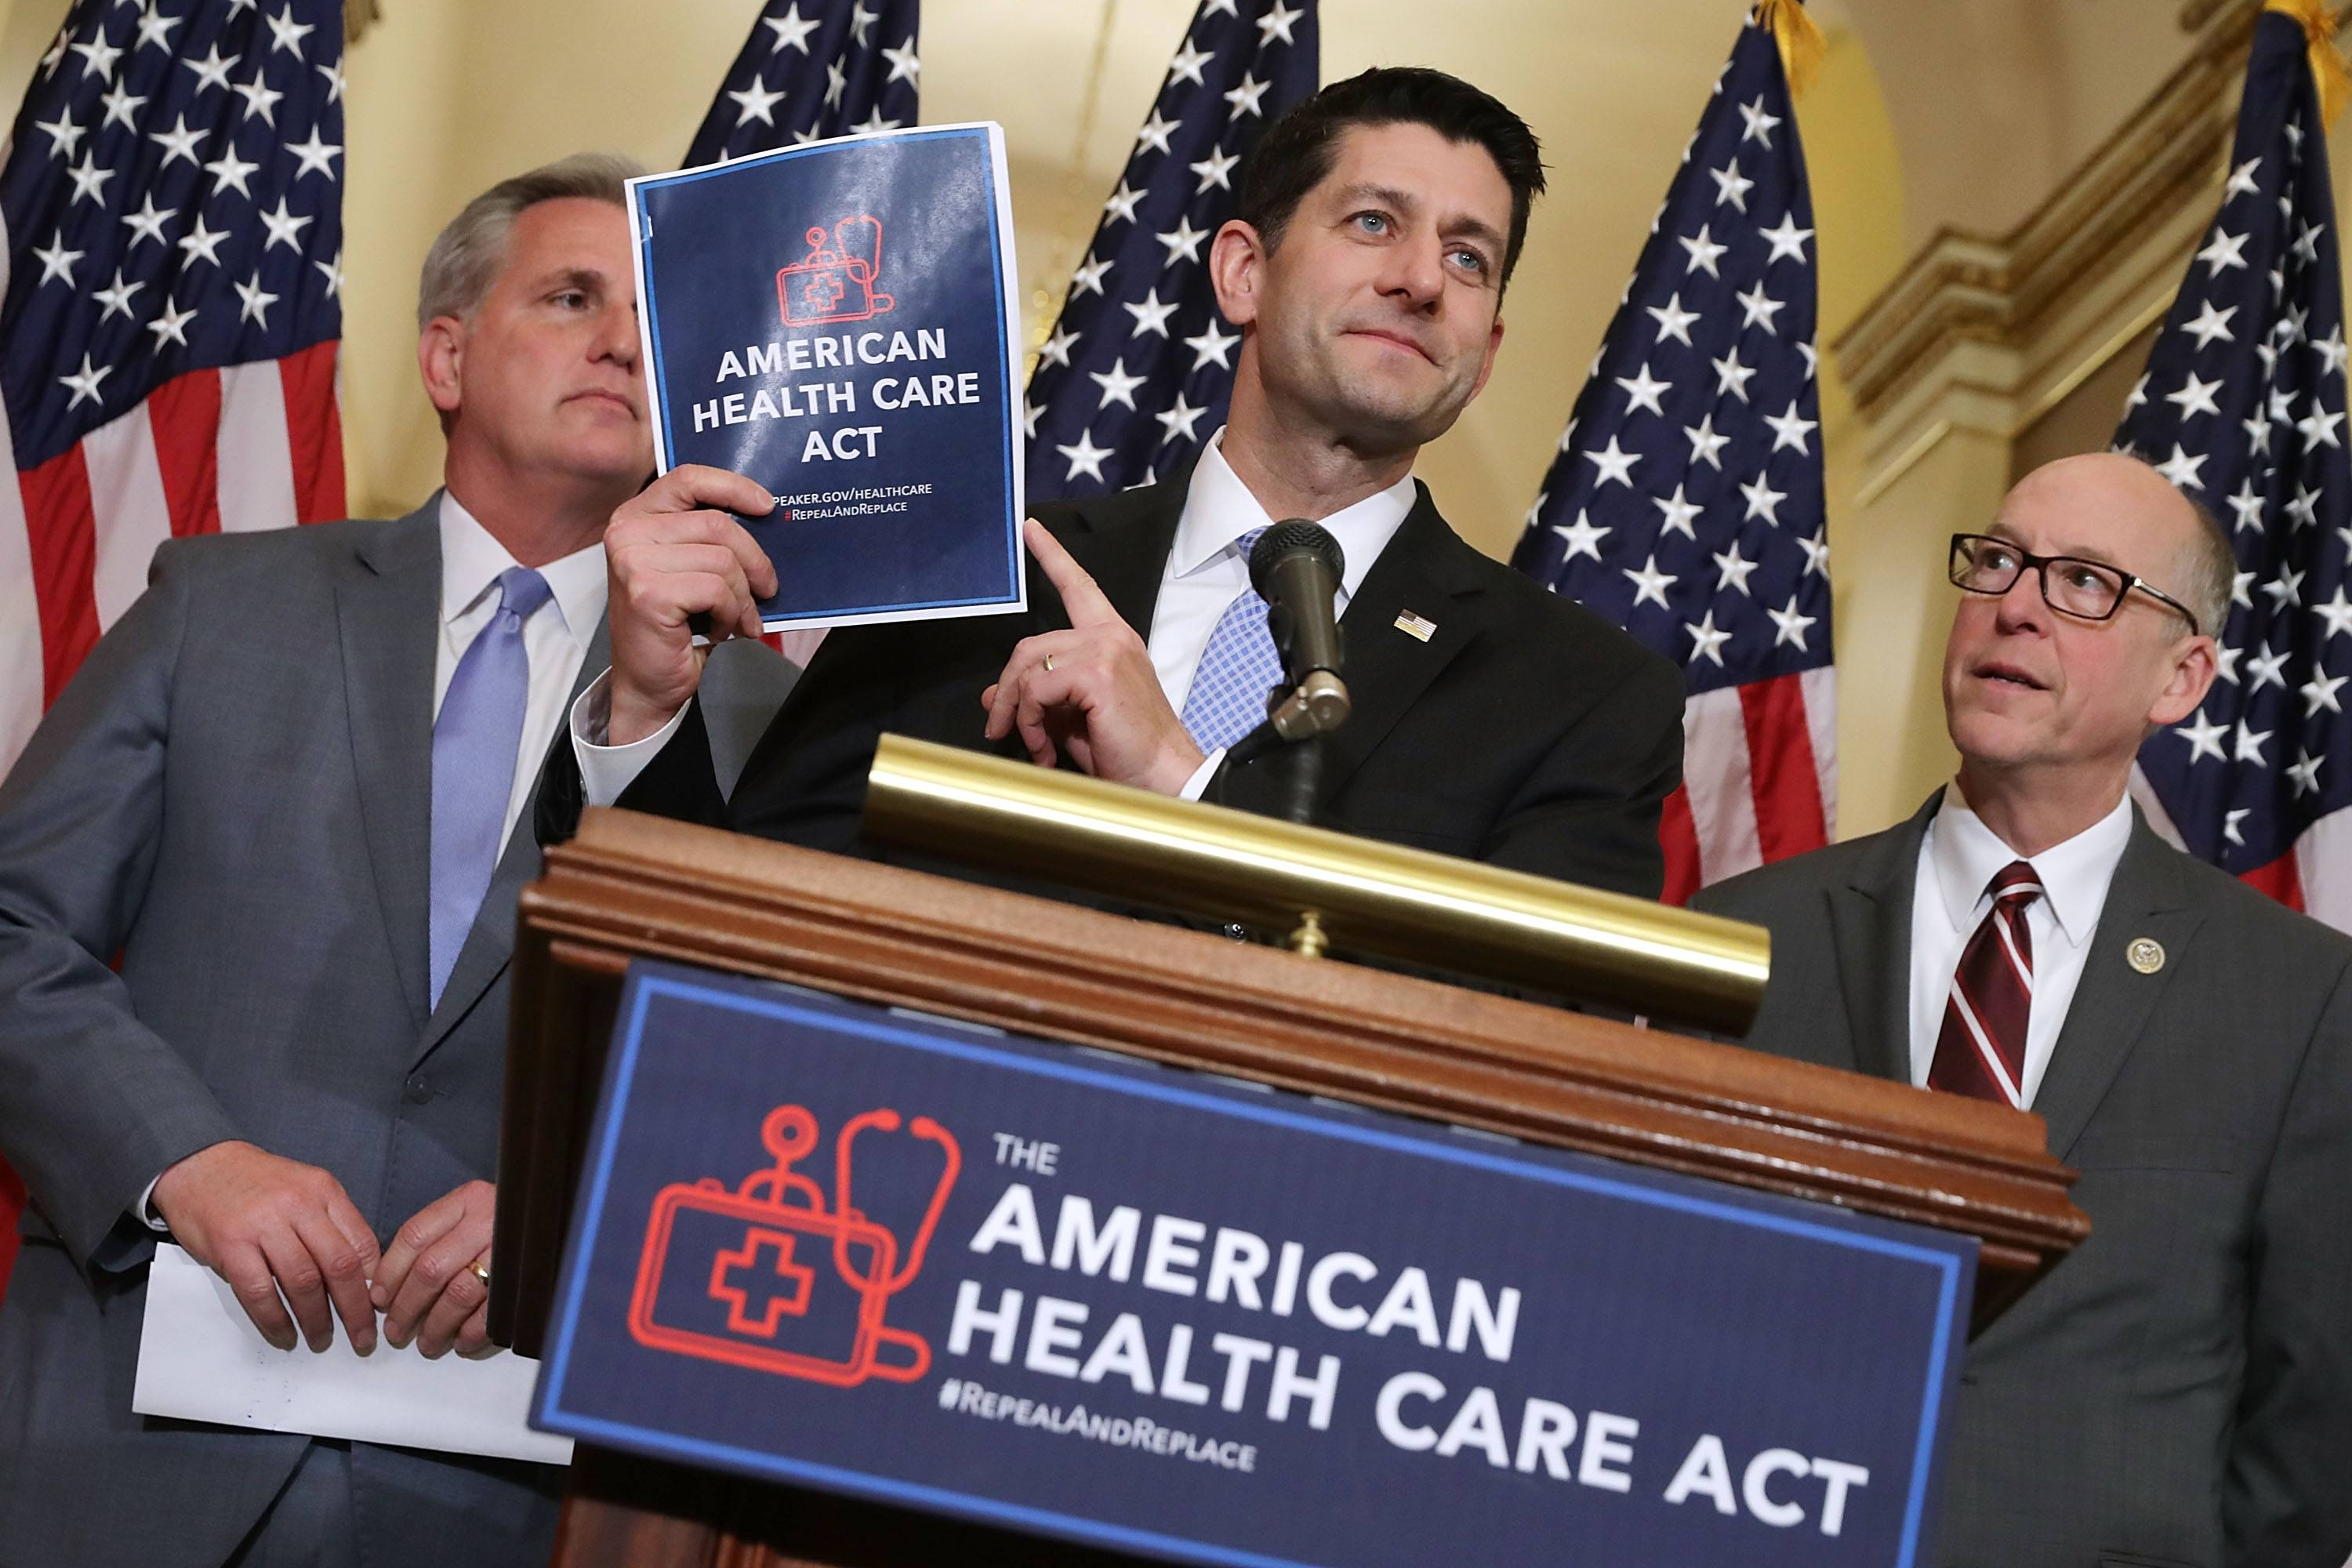 Paul Ryan holds up a copy of the American Health Care Act